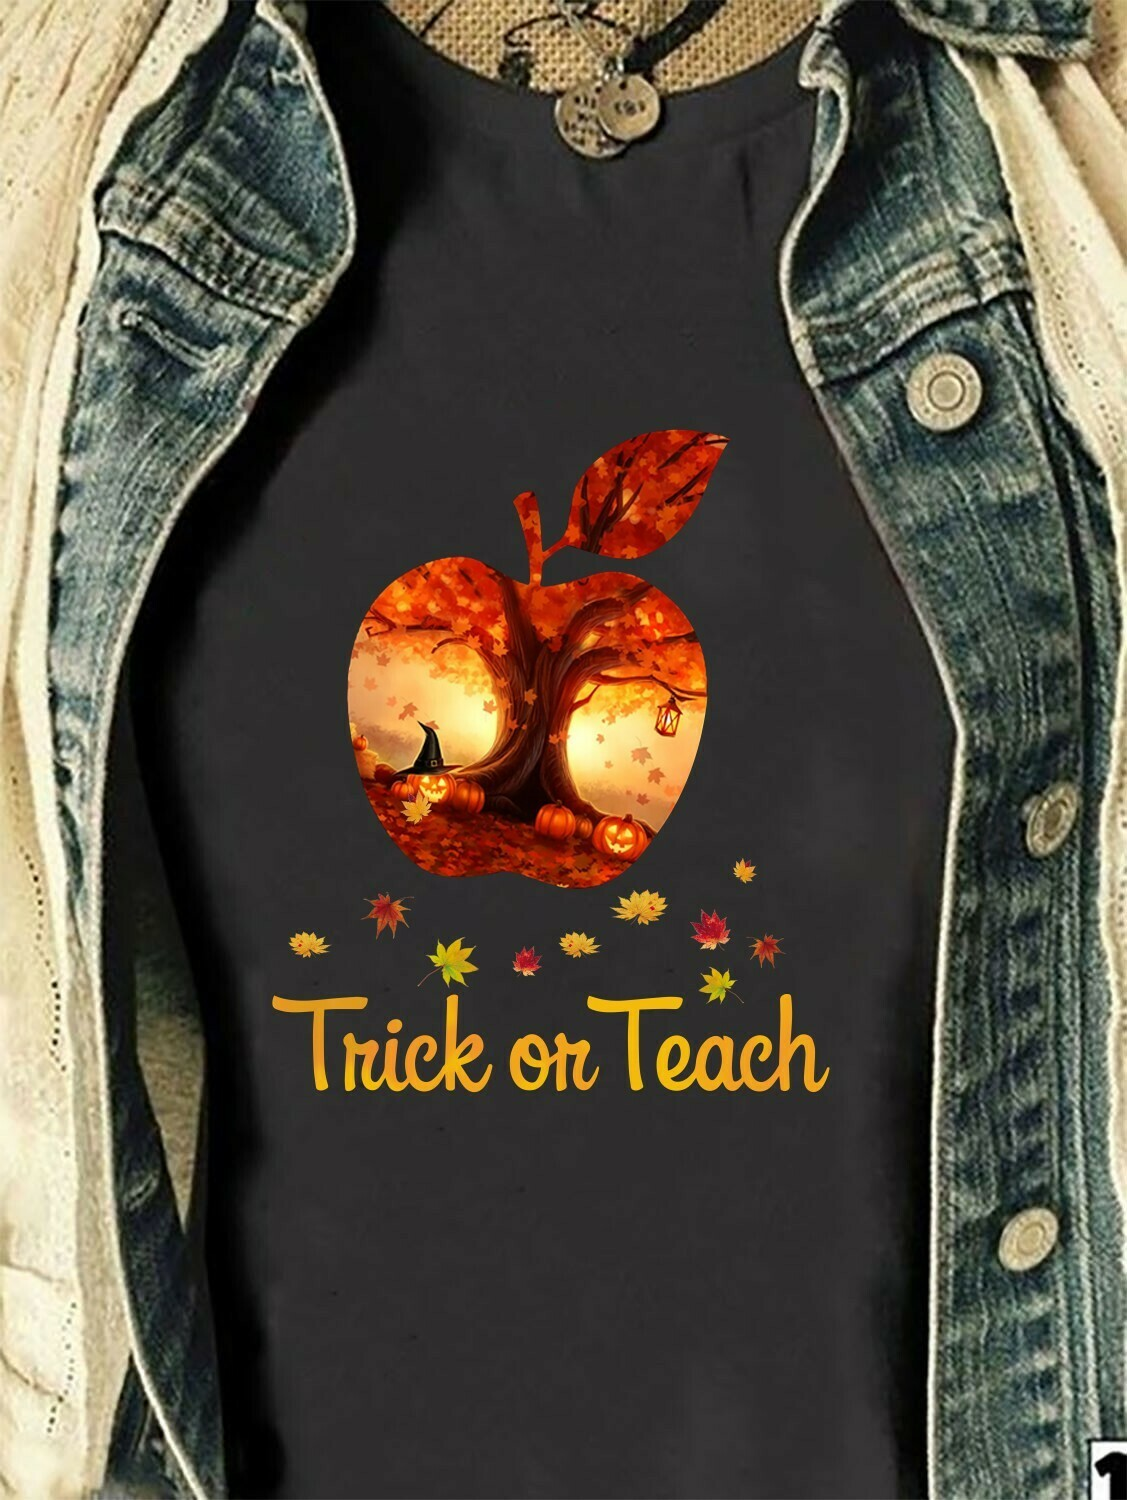 Trich Or Teach Halloween Book Skull Witch Halloween Costume Clothing Gift T-Shirt Long Sleeve Sweatshirt Hoodie Jolly Family Gifts